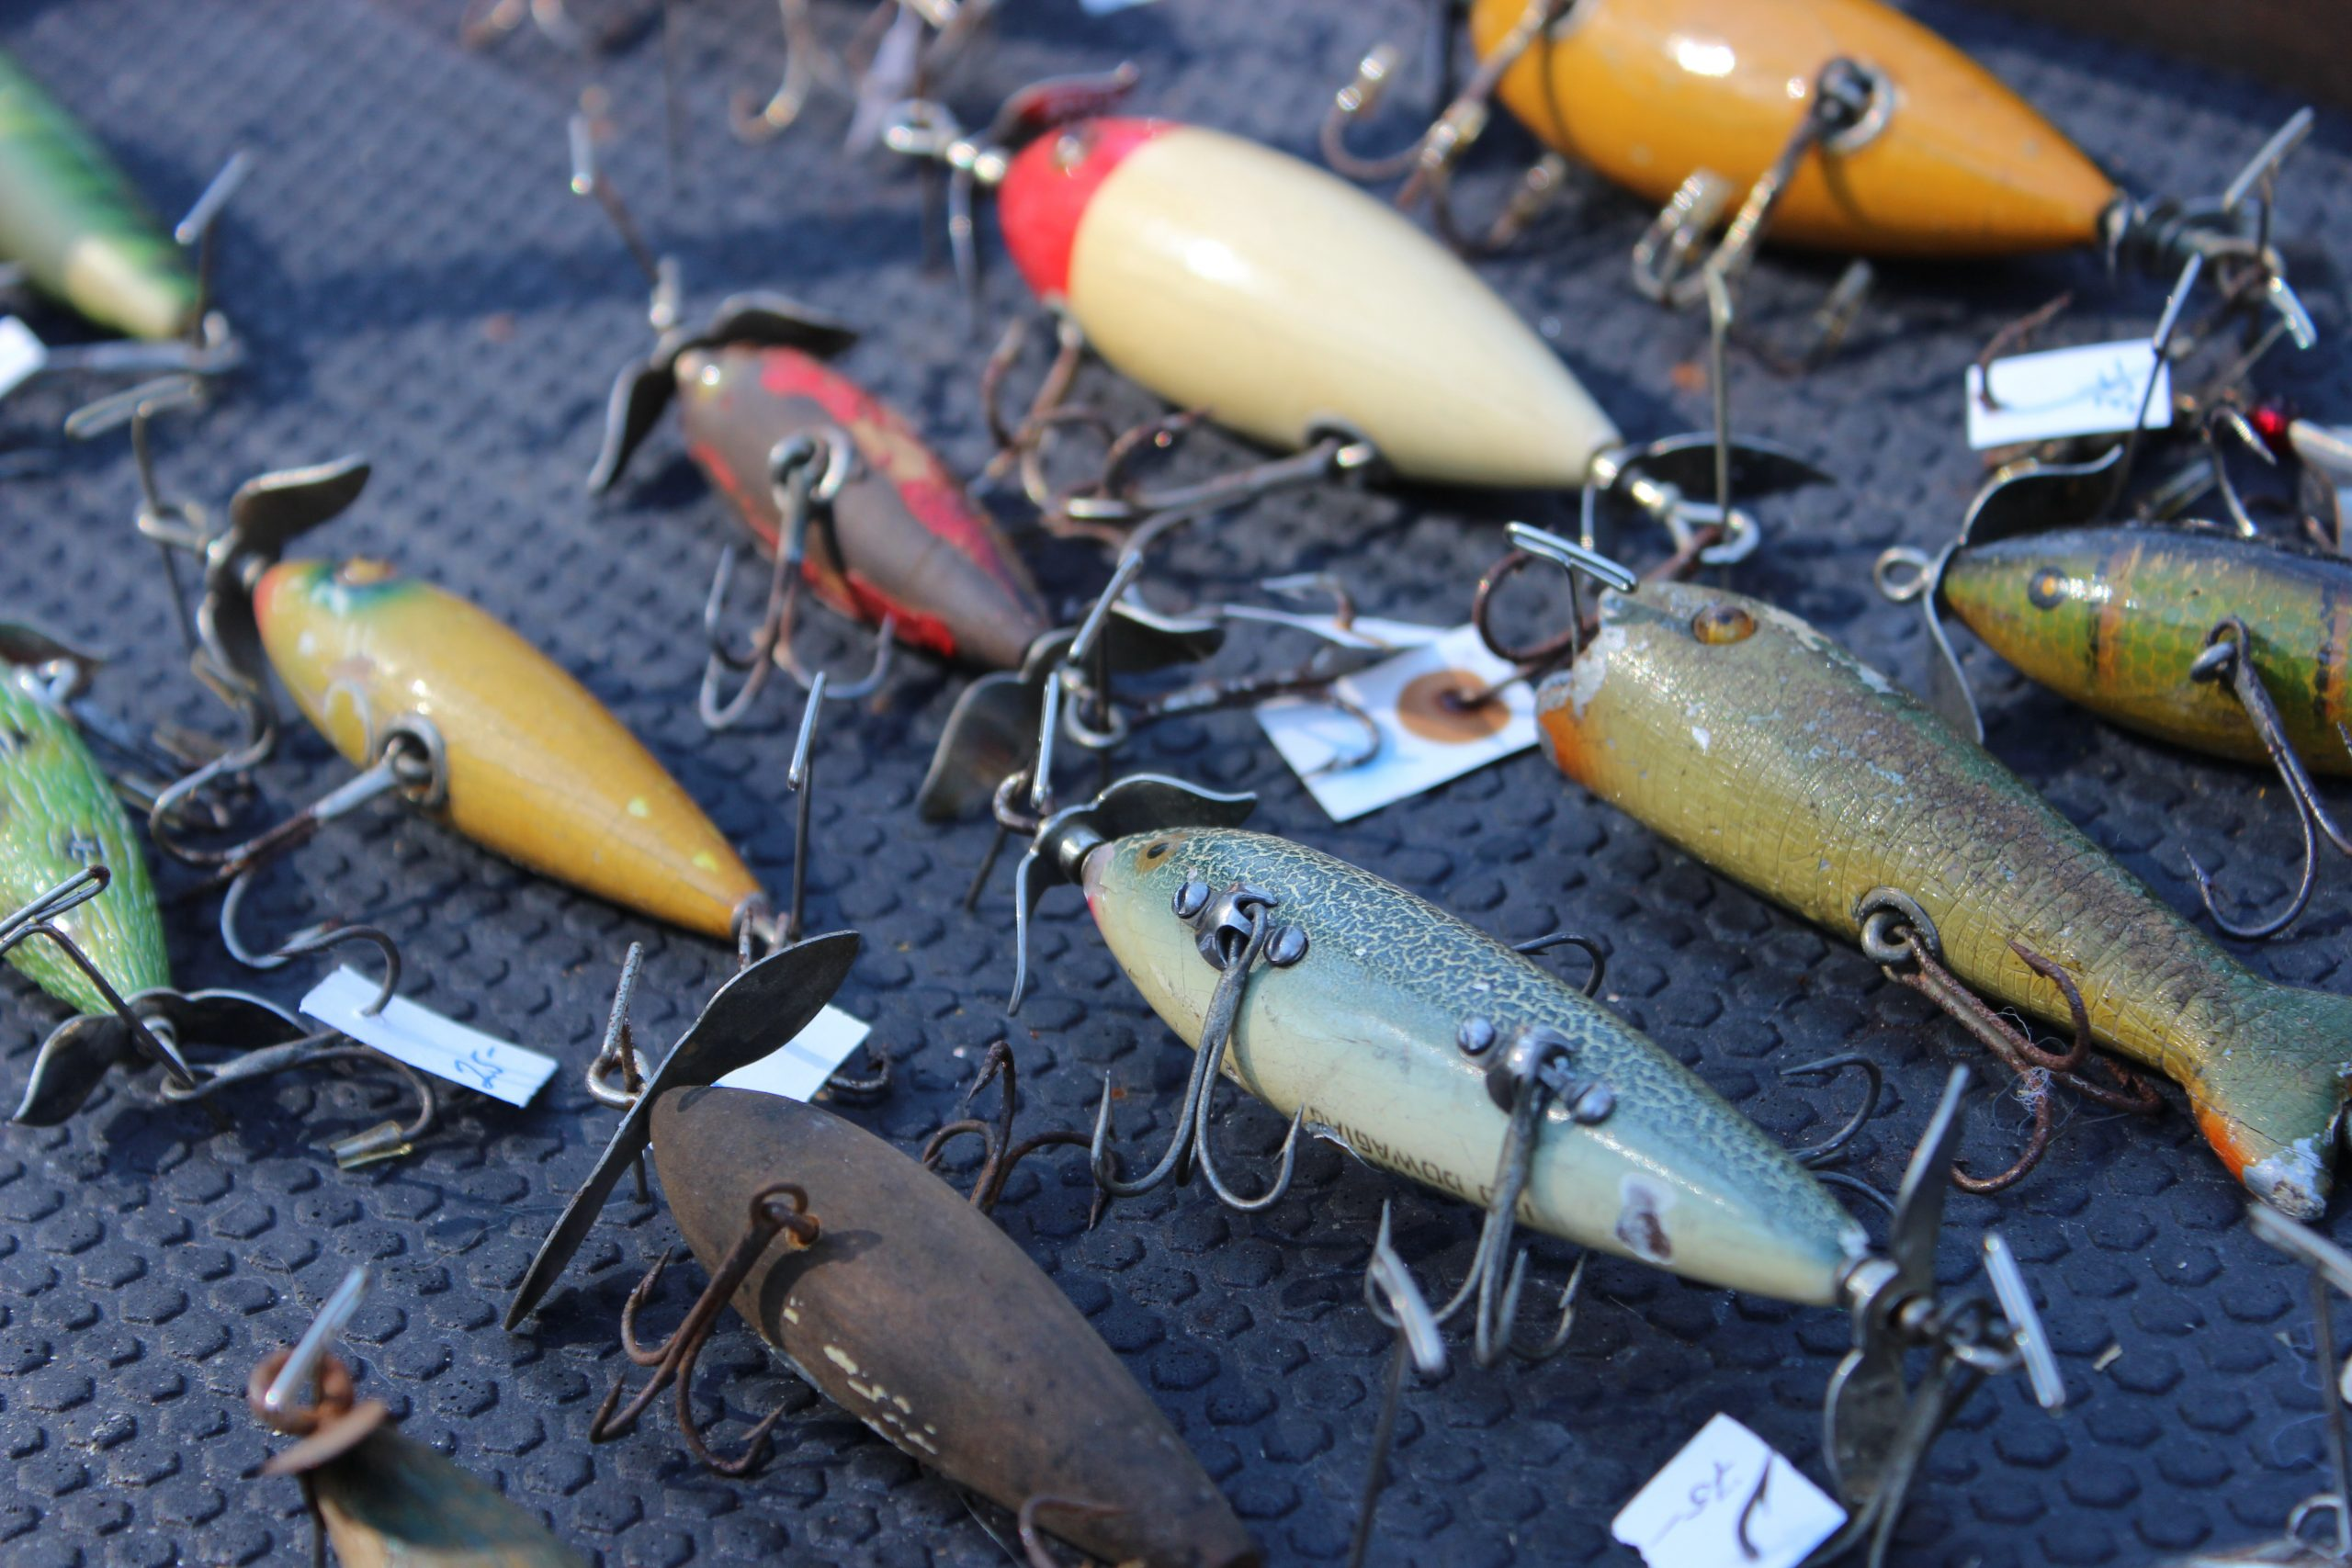 Brightly colored and pale fishing tackles